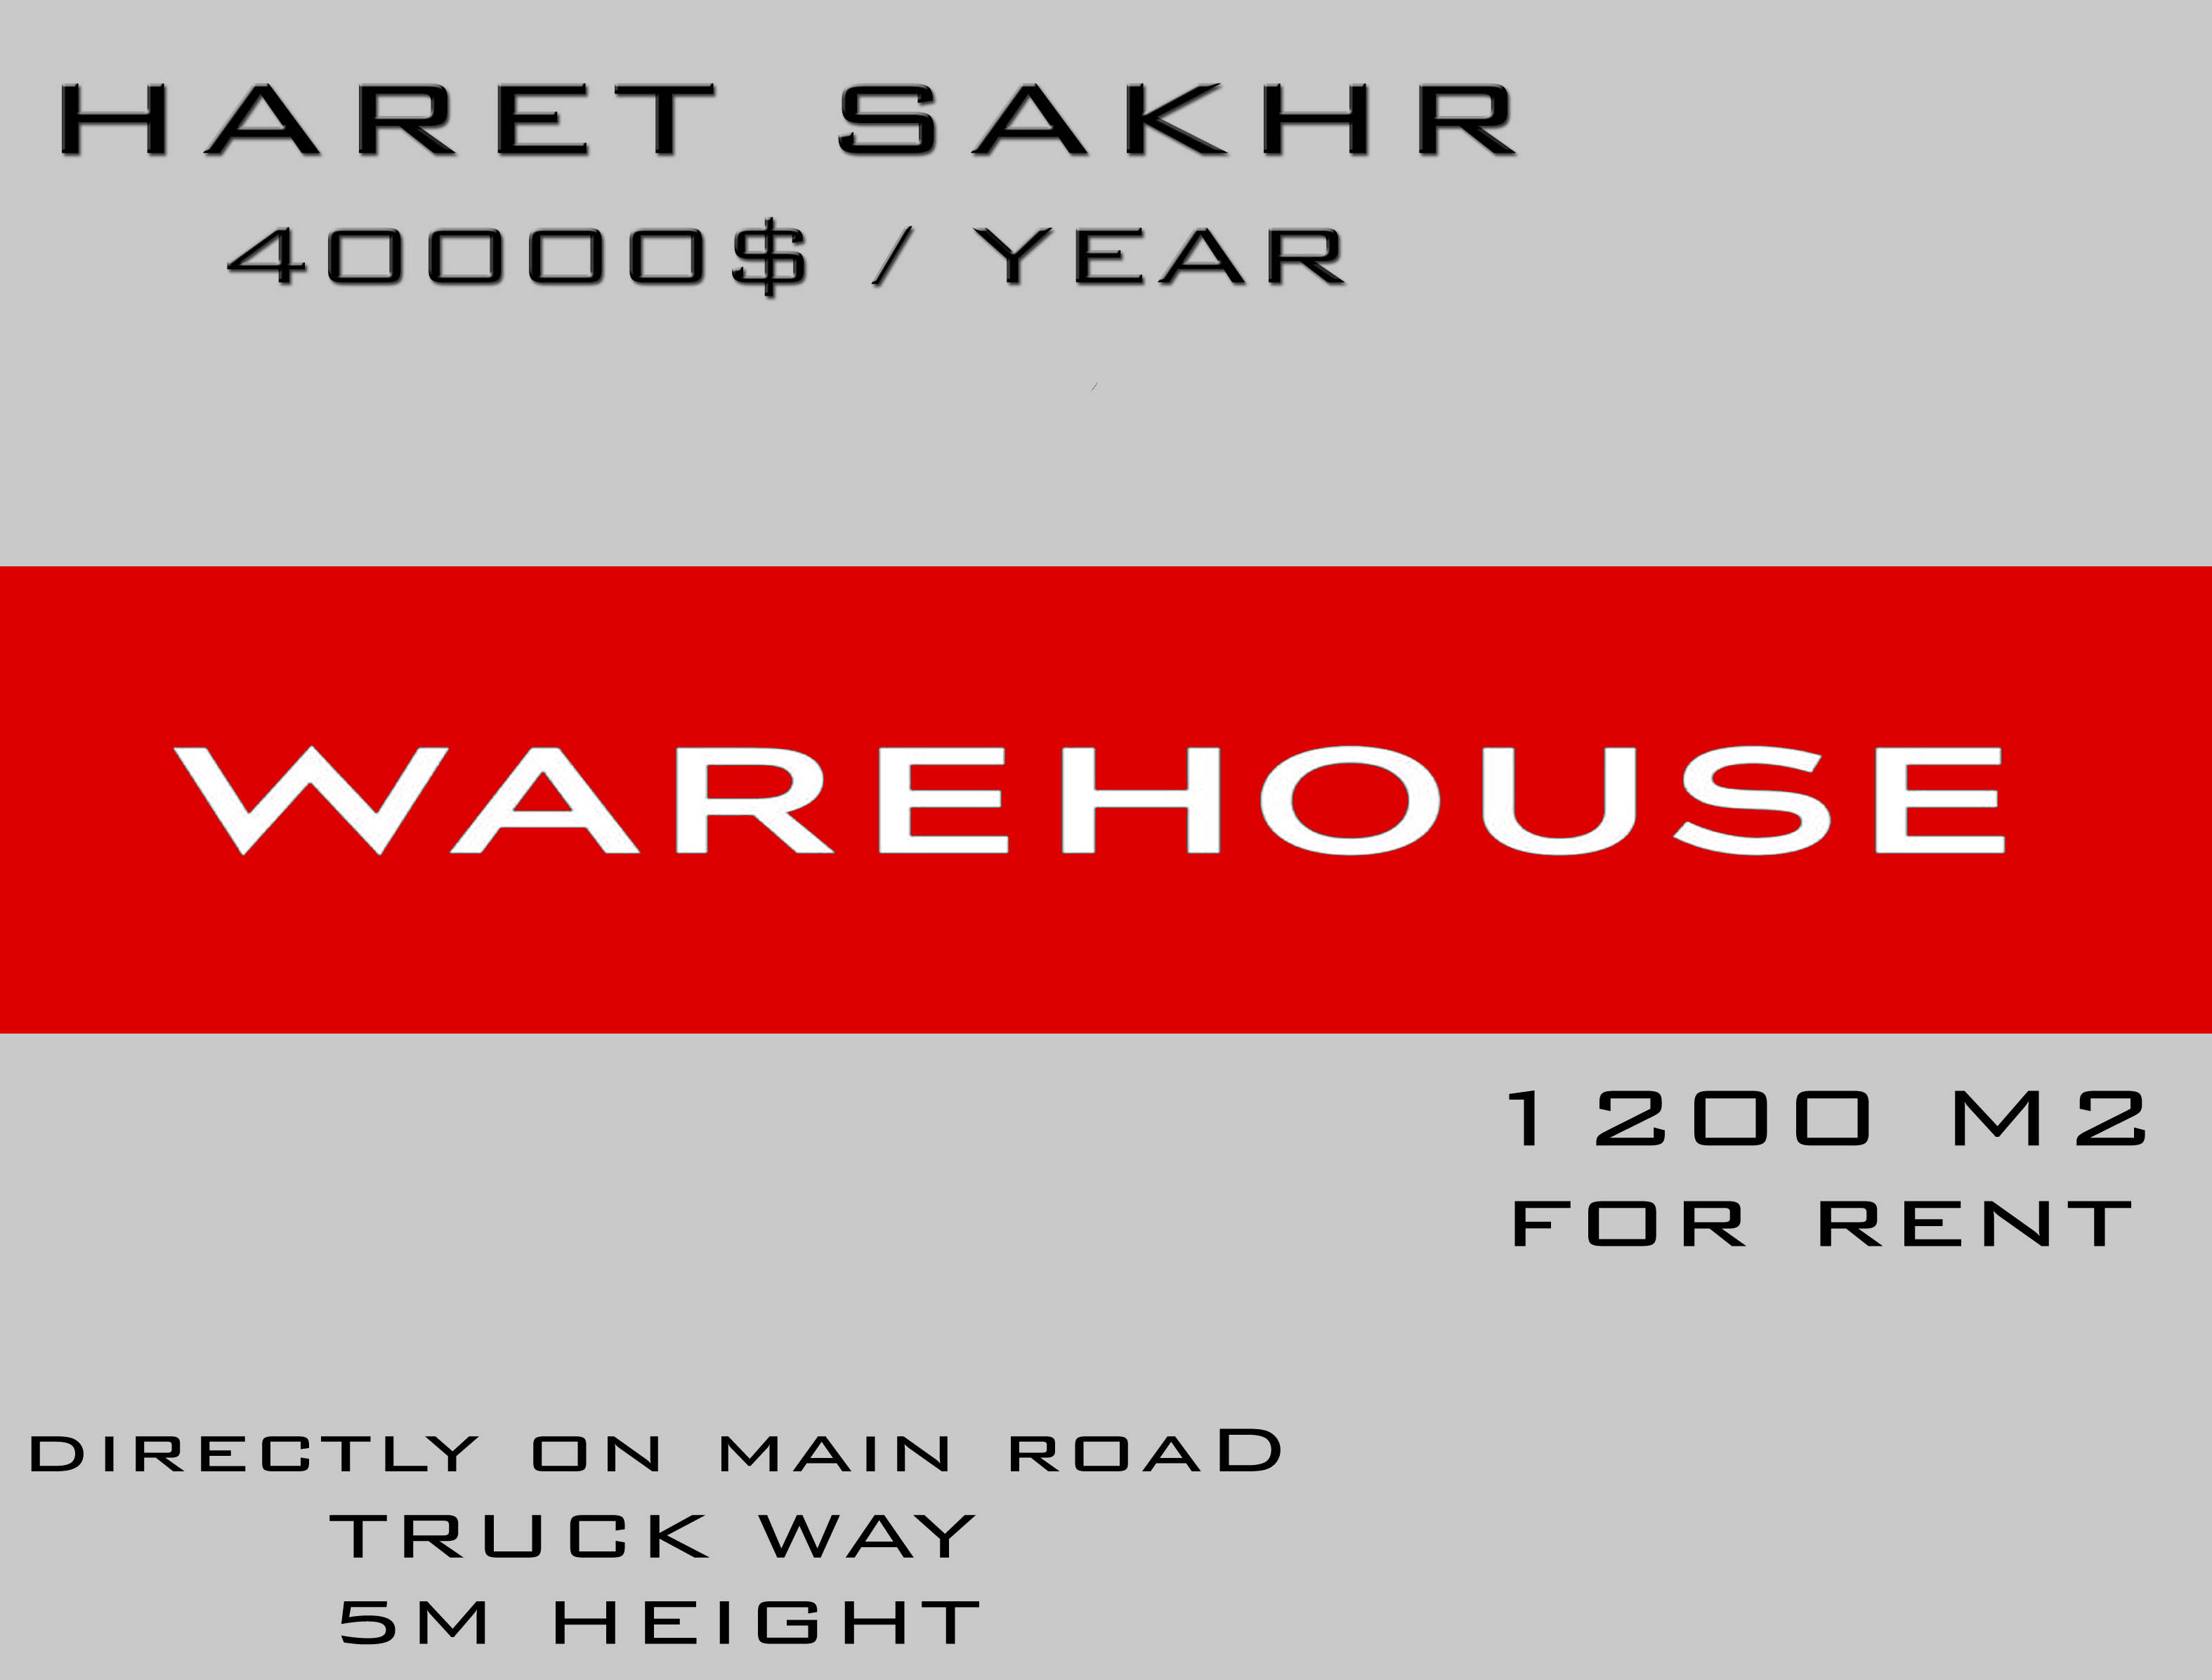 Warehouse for rent in keserwan lebanon - Real estate in lebanon - Buy and sell properties in lebanon